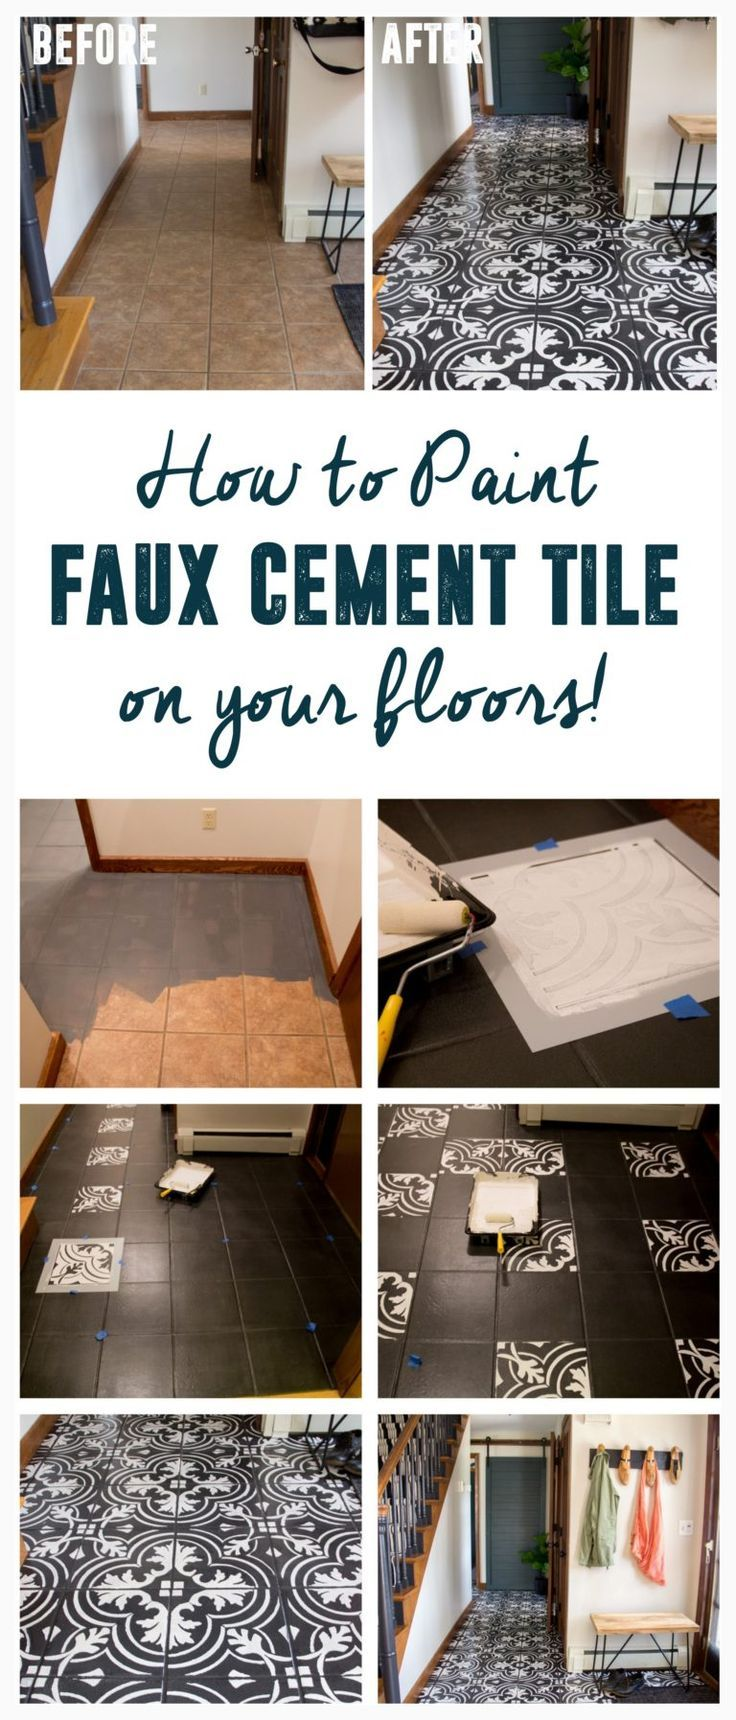 Best 25 painting tile floors ideas on pinterest painting tiles diy faux cement tile how to paint tile diy faux cement tile floors www dailygadgetfo Gallery